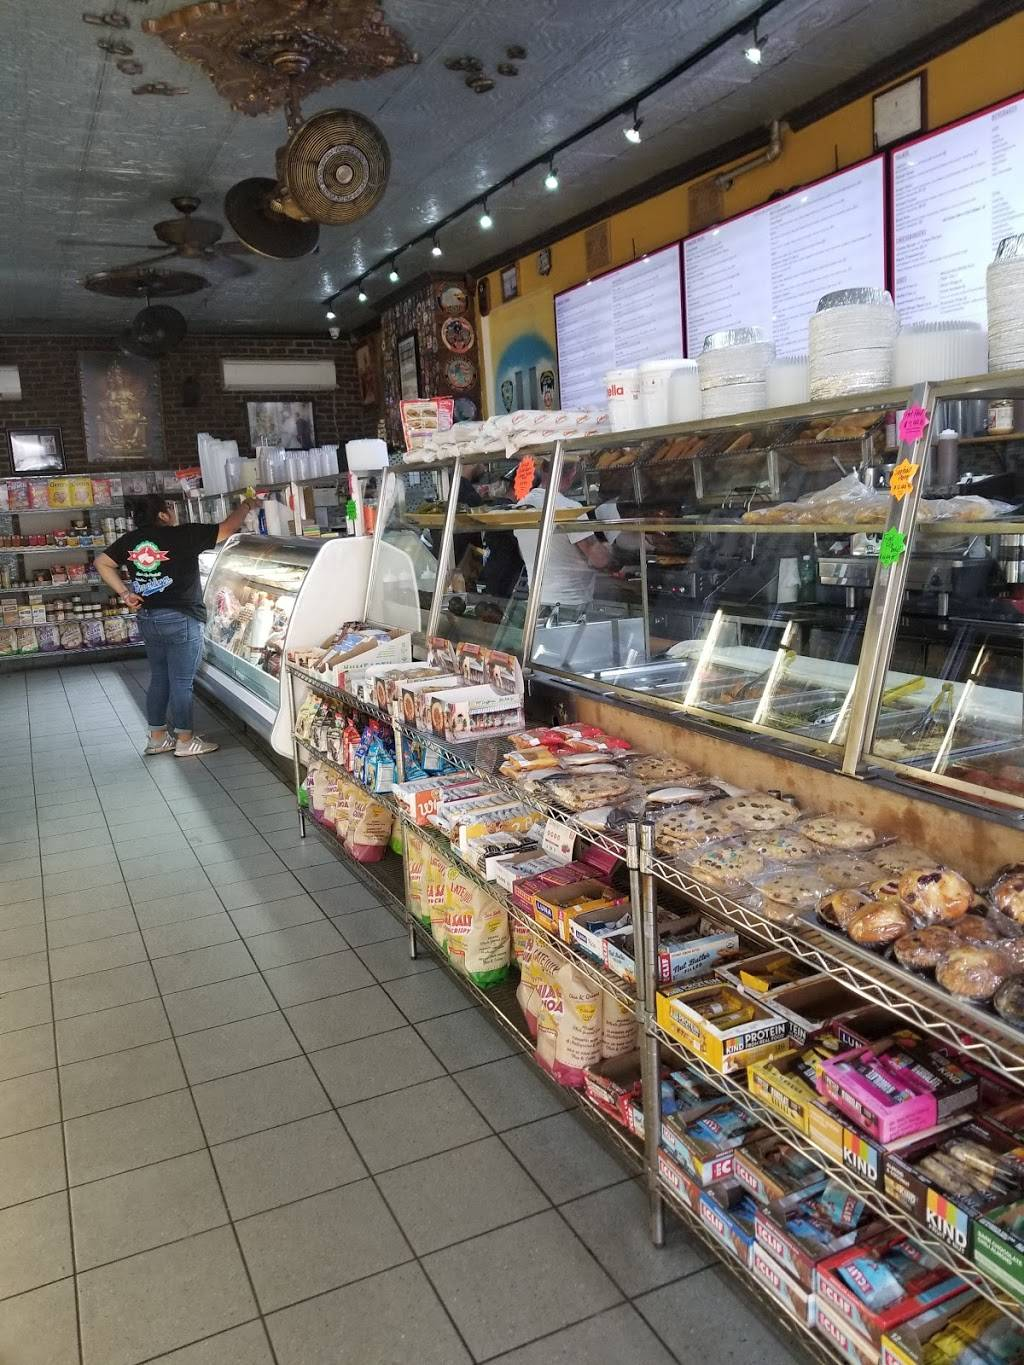 Anthony & Son Panini Shoppe | meal takeaway | 433 Graham Ave, Brooklyn, NY 11211, USA | 7183837395 OR +1 718-383-7395